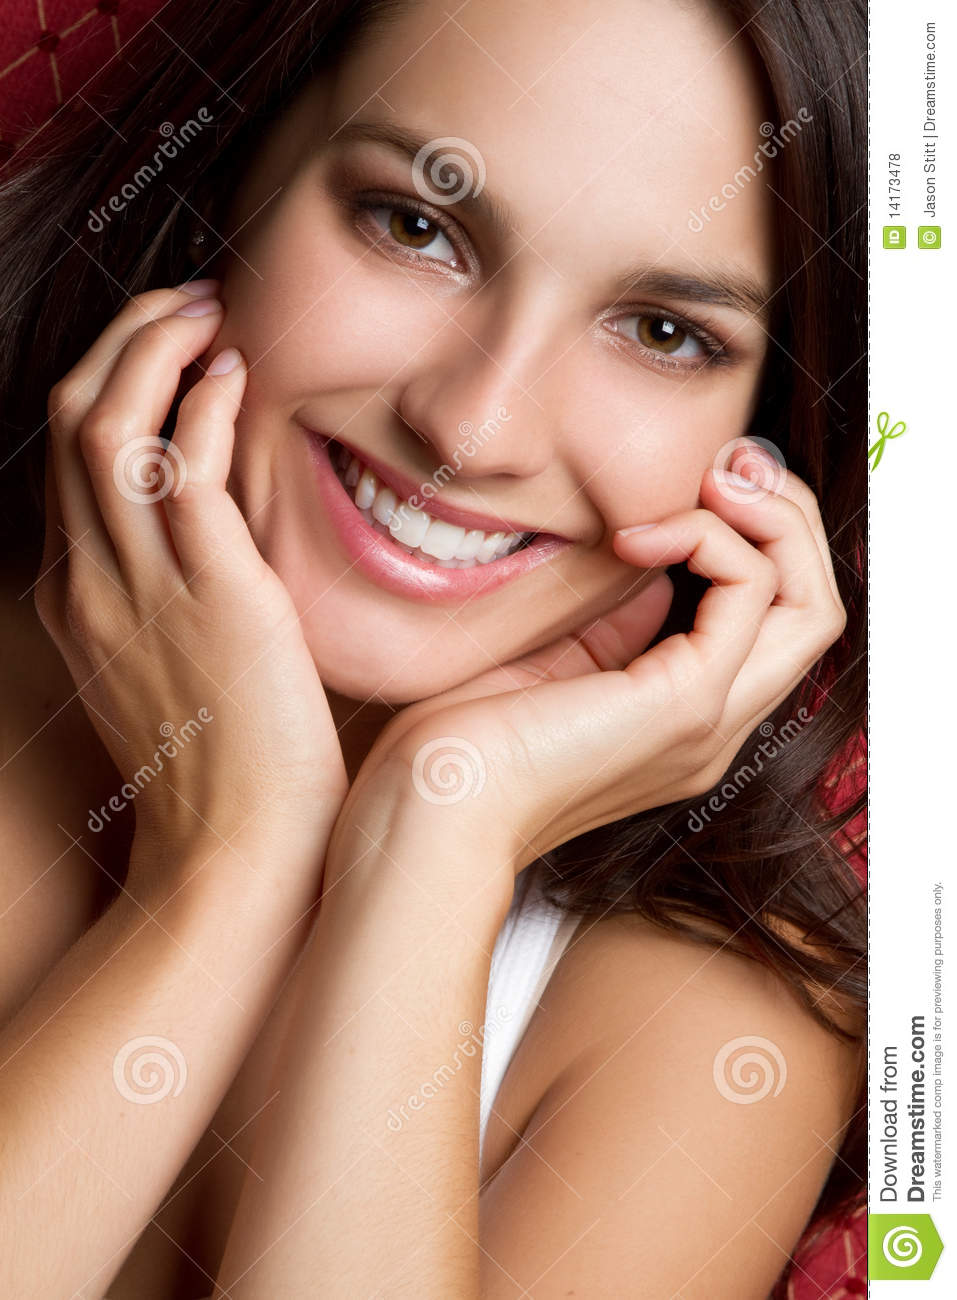 5 Woman Smiling Stock Photos Free Images